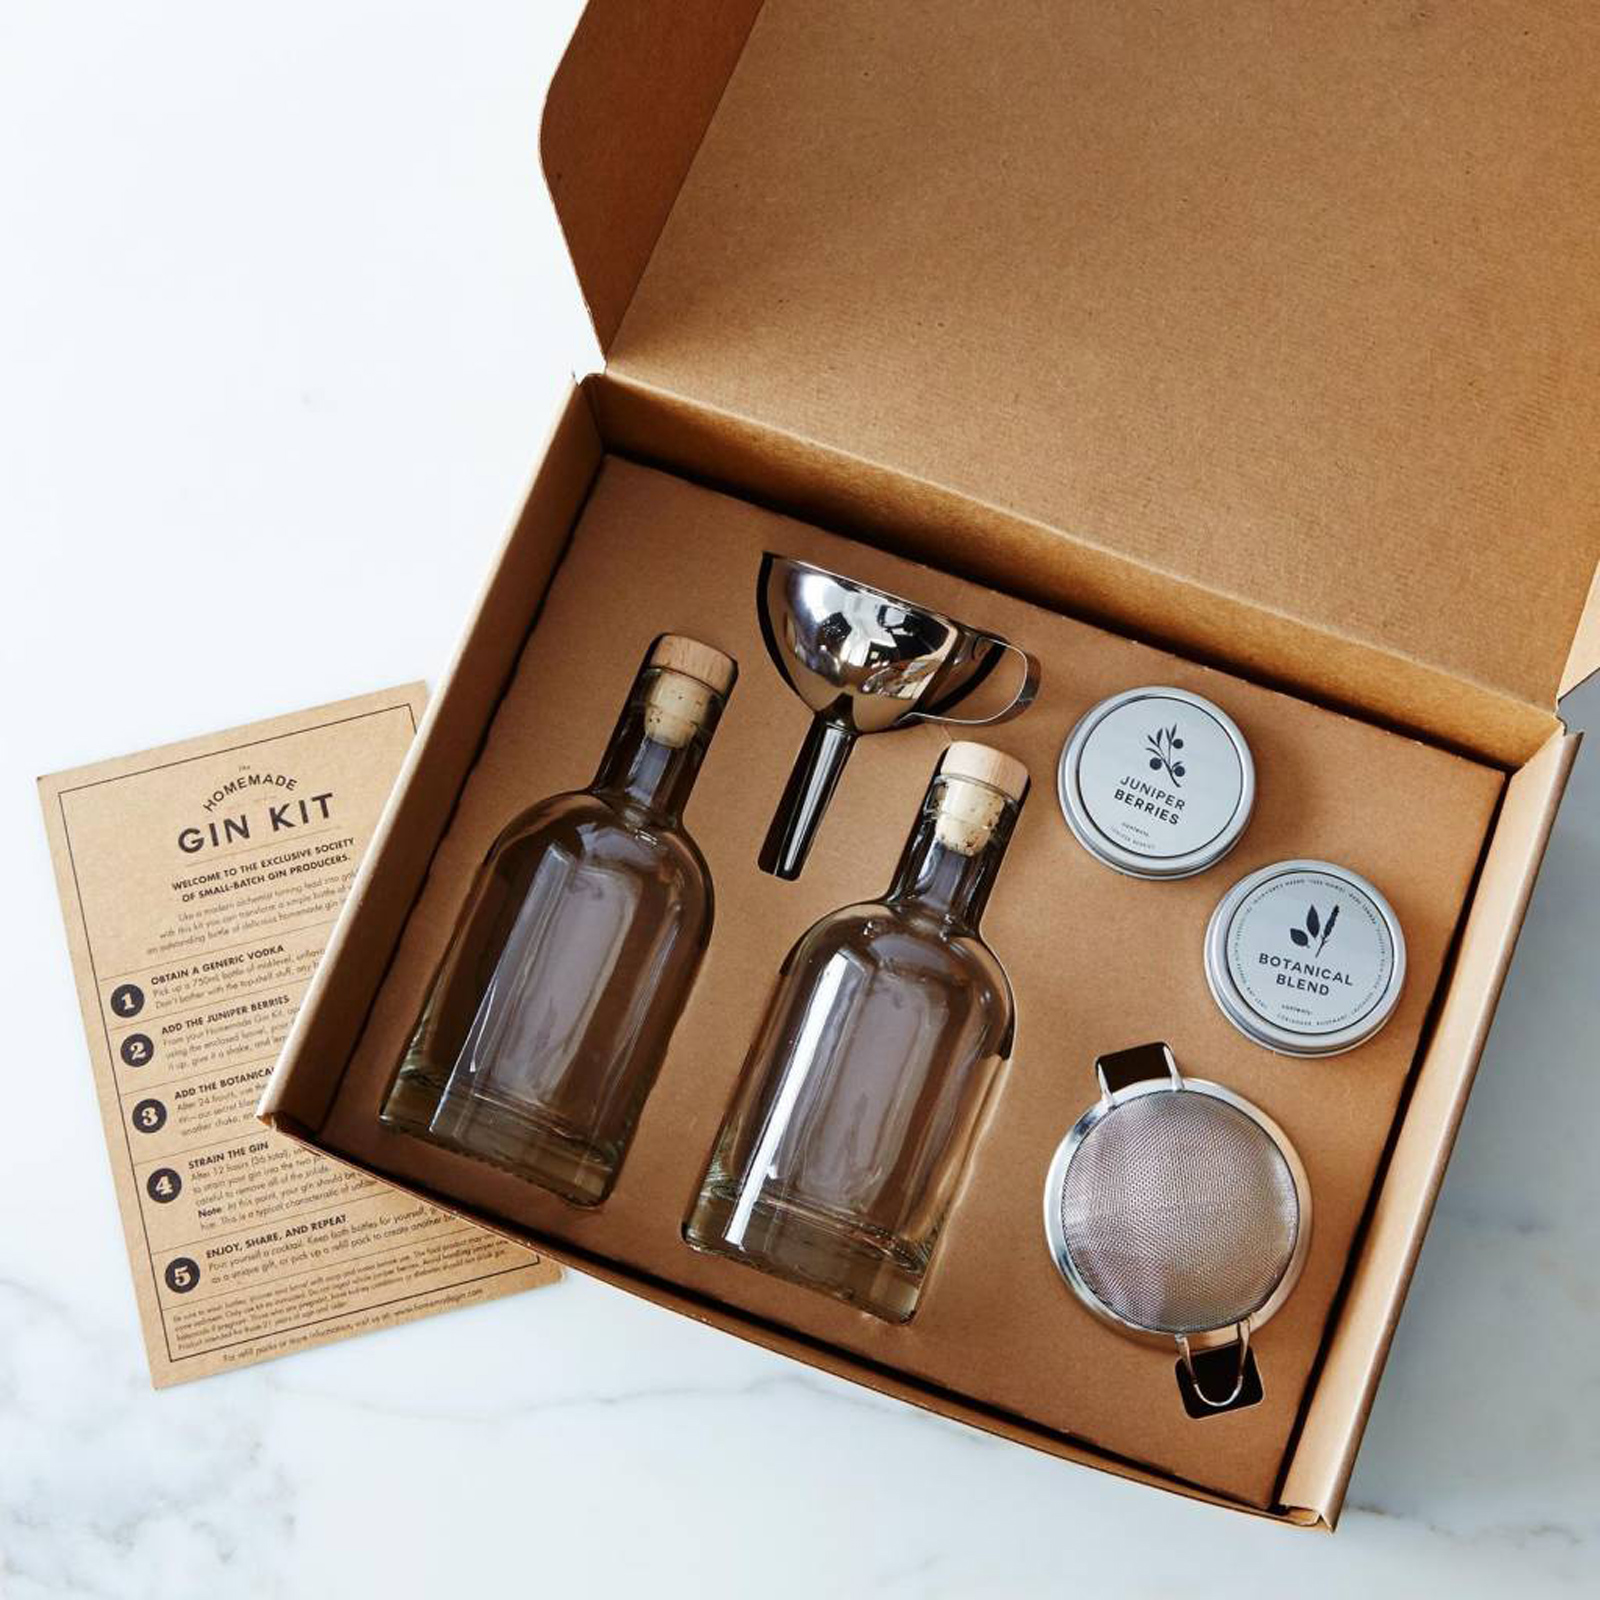 THE HOMEMADE GIN KIT - Is your mum a gin lover? Well we've got the perfect gin gift for her! This kit contains everything you need to transform a standard bottle of vodka to your mums very own gin!